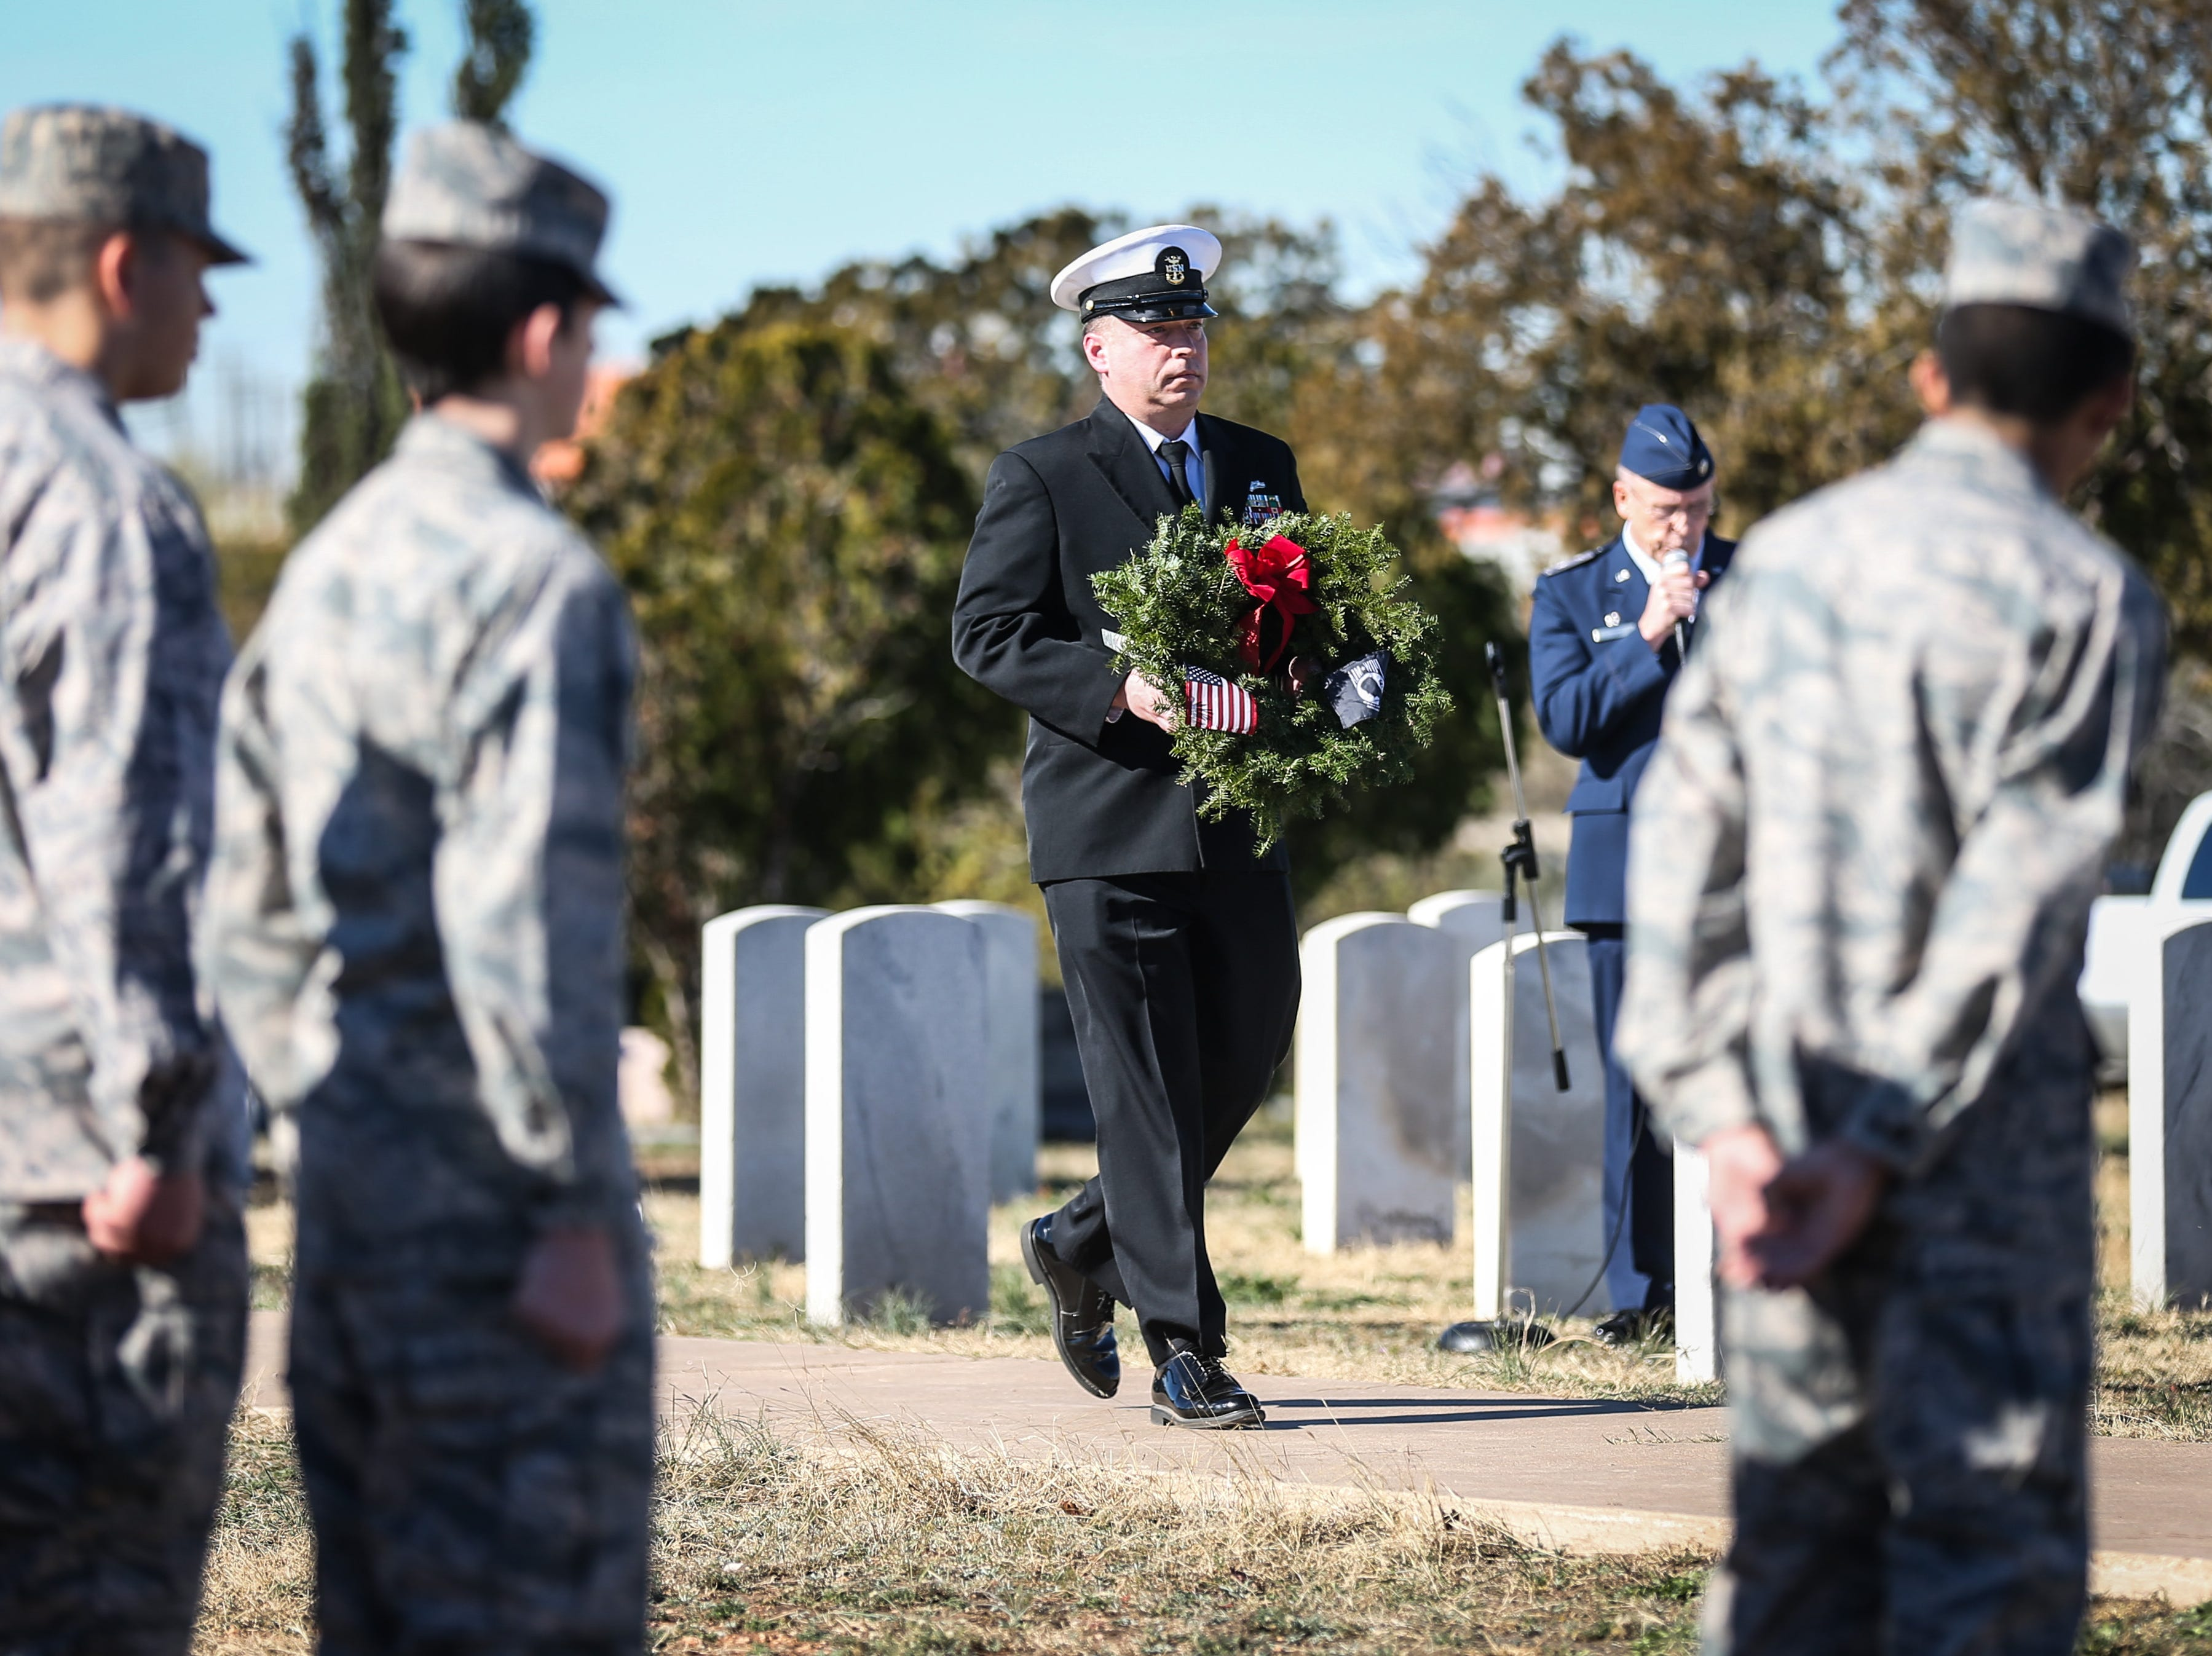 Navy Master Chief Petty Officer Joe Reynold walks up with a ceremonial wreath during the Wreaths Across America Saturday, Dec. 15, 2018, at Belvedere Memorial Park.